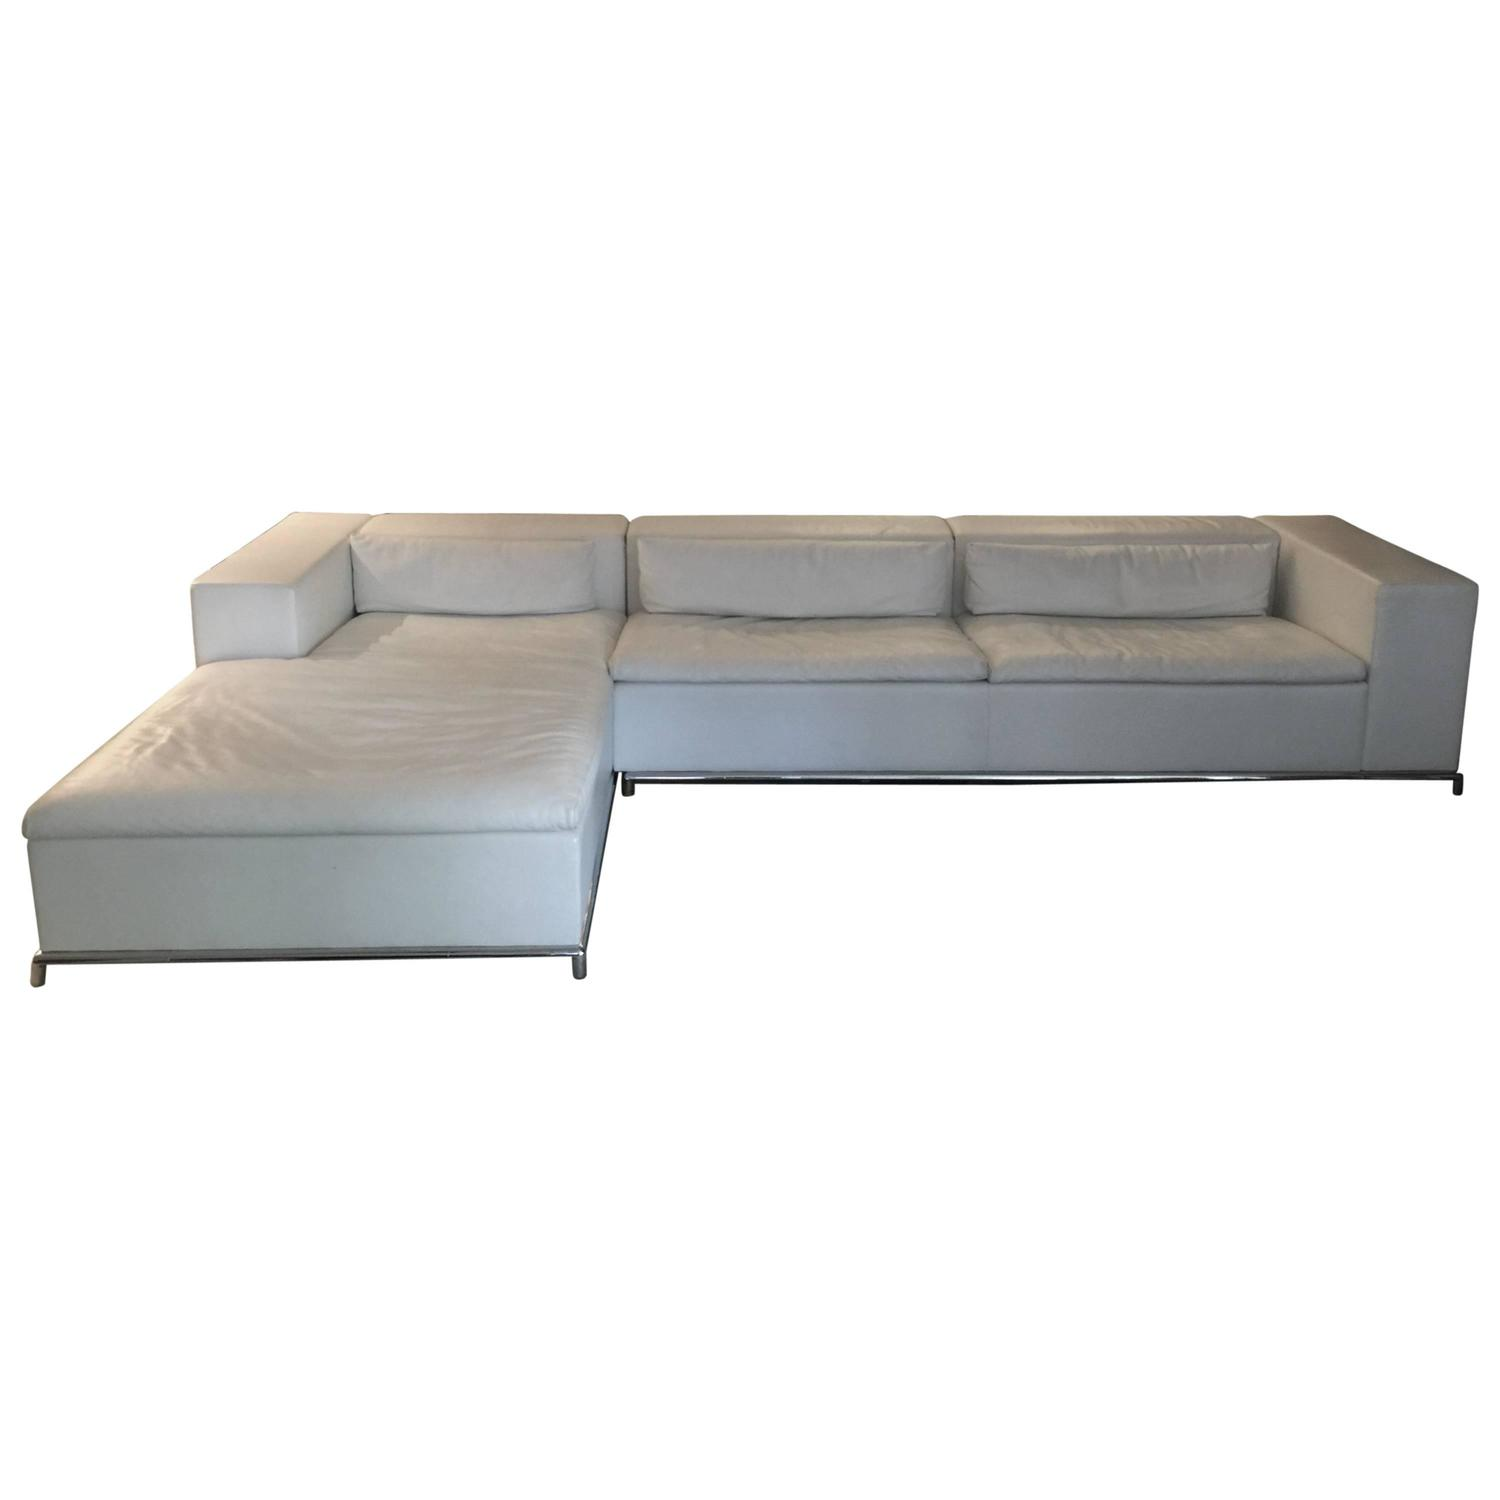 De Sede Sectional Sofas 13 For Sale at 1stdibs